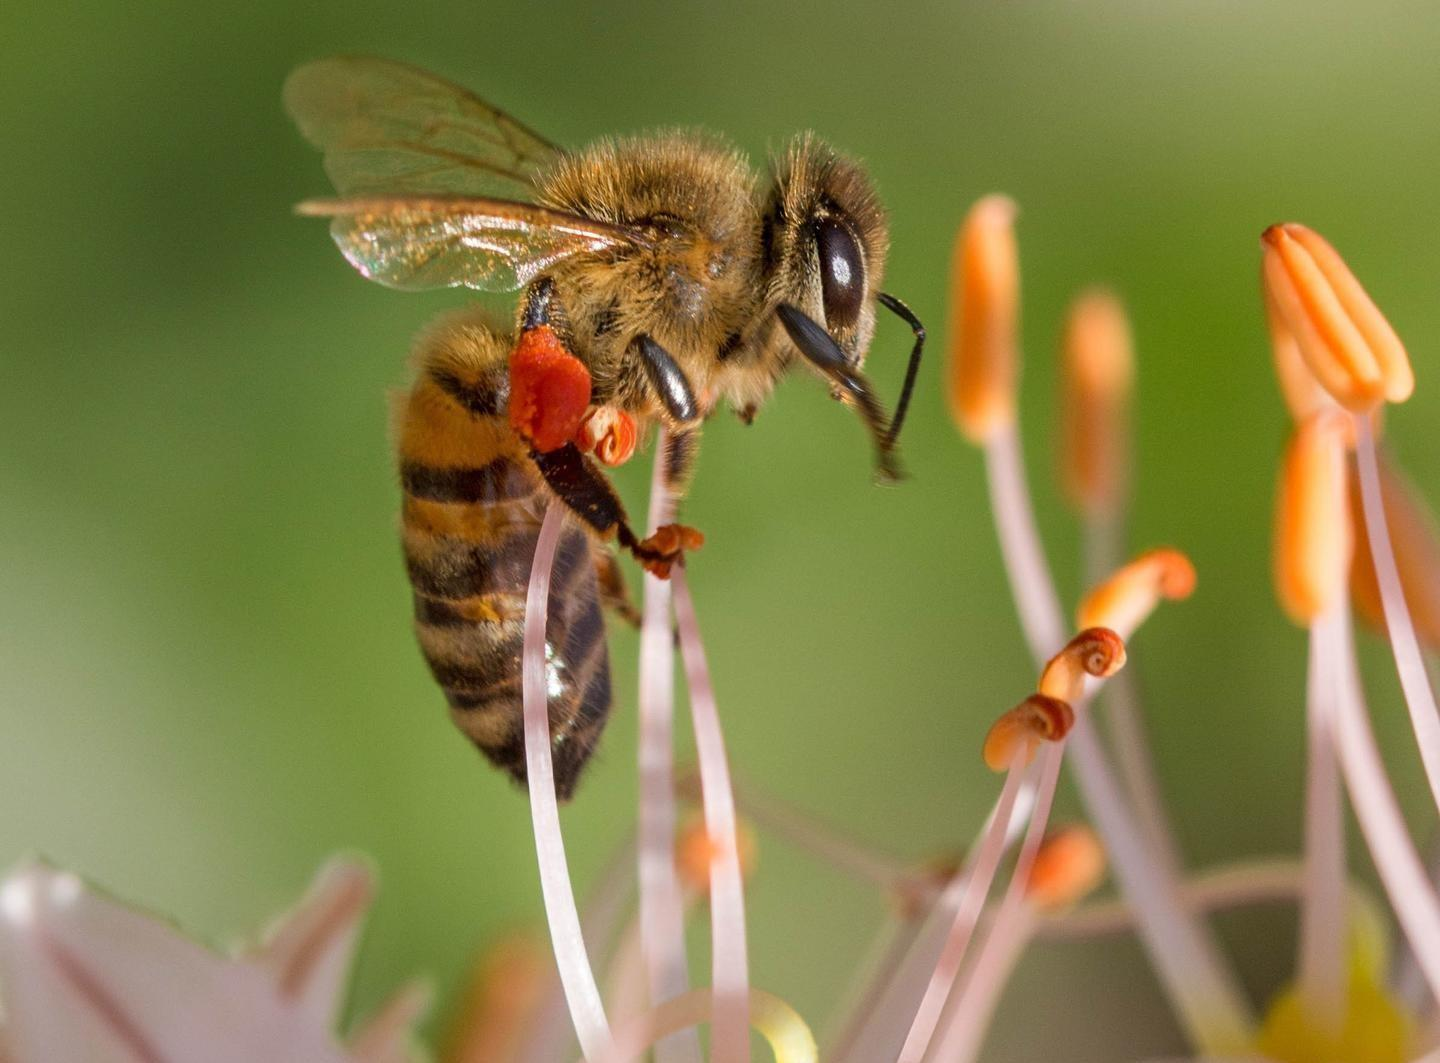 worker bees on a flower